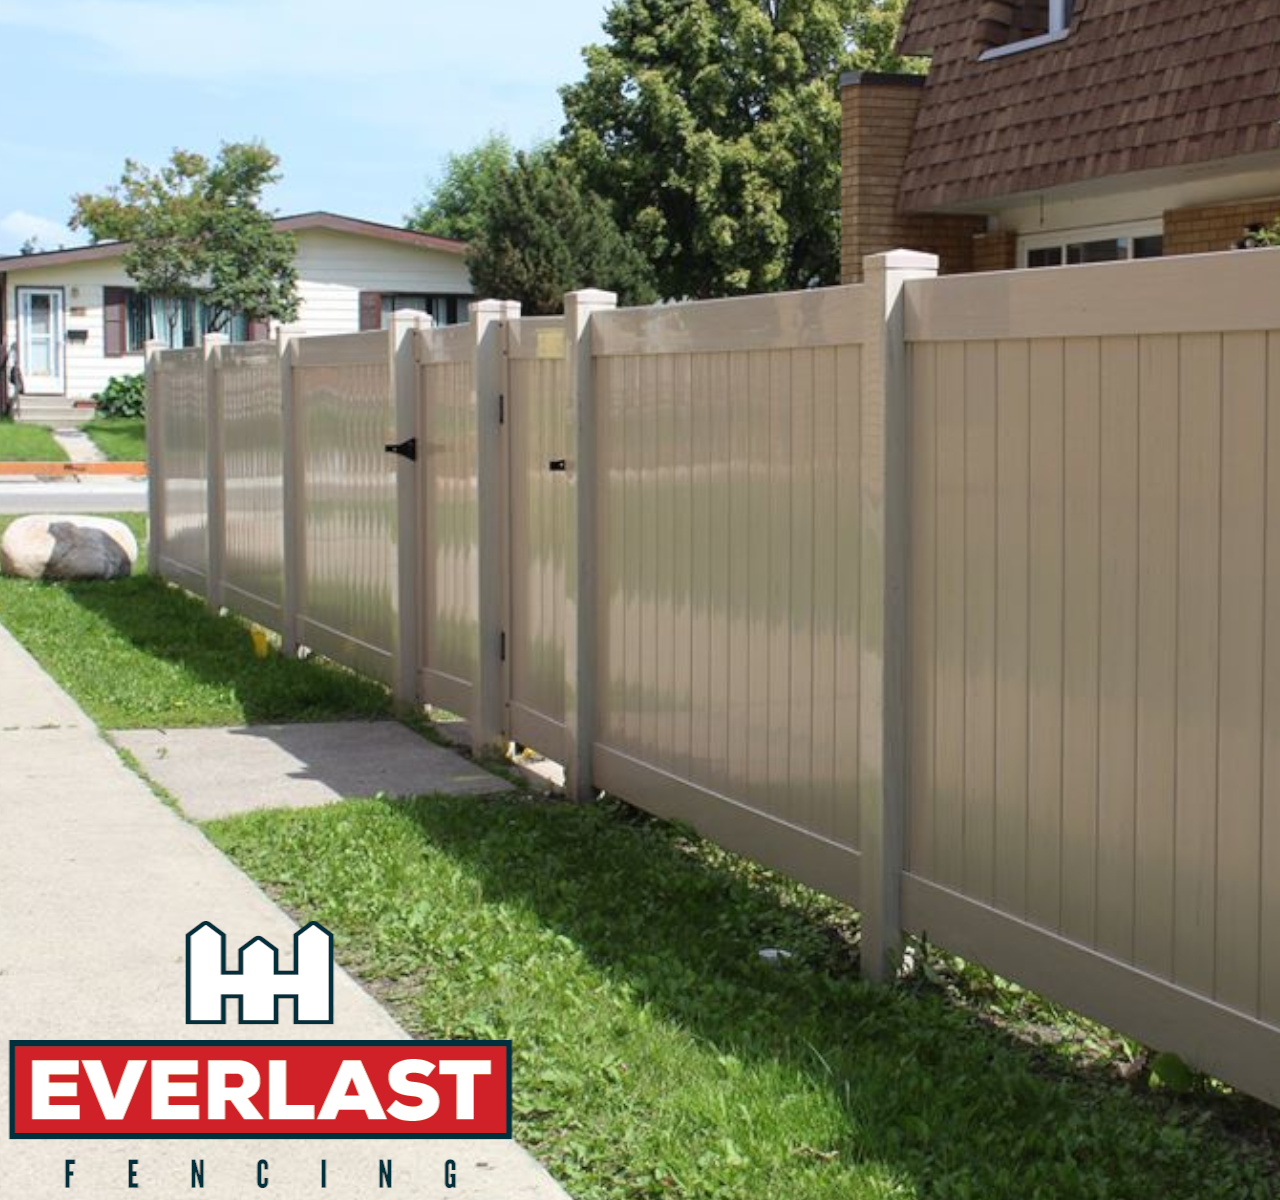 https://www.getmosaic.ca/wp-content/uploads/2021/05/Everlast-Vinyl-Fencing-Brand-Page-With-Logo.png